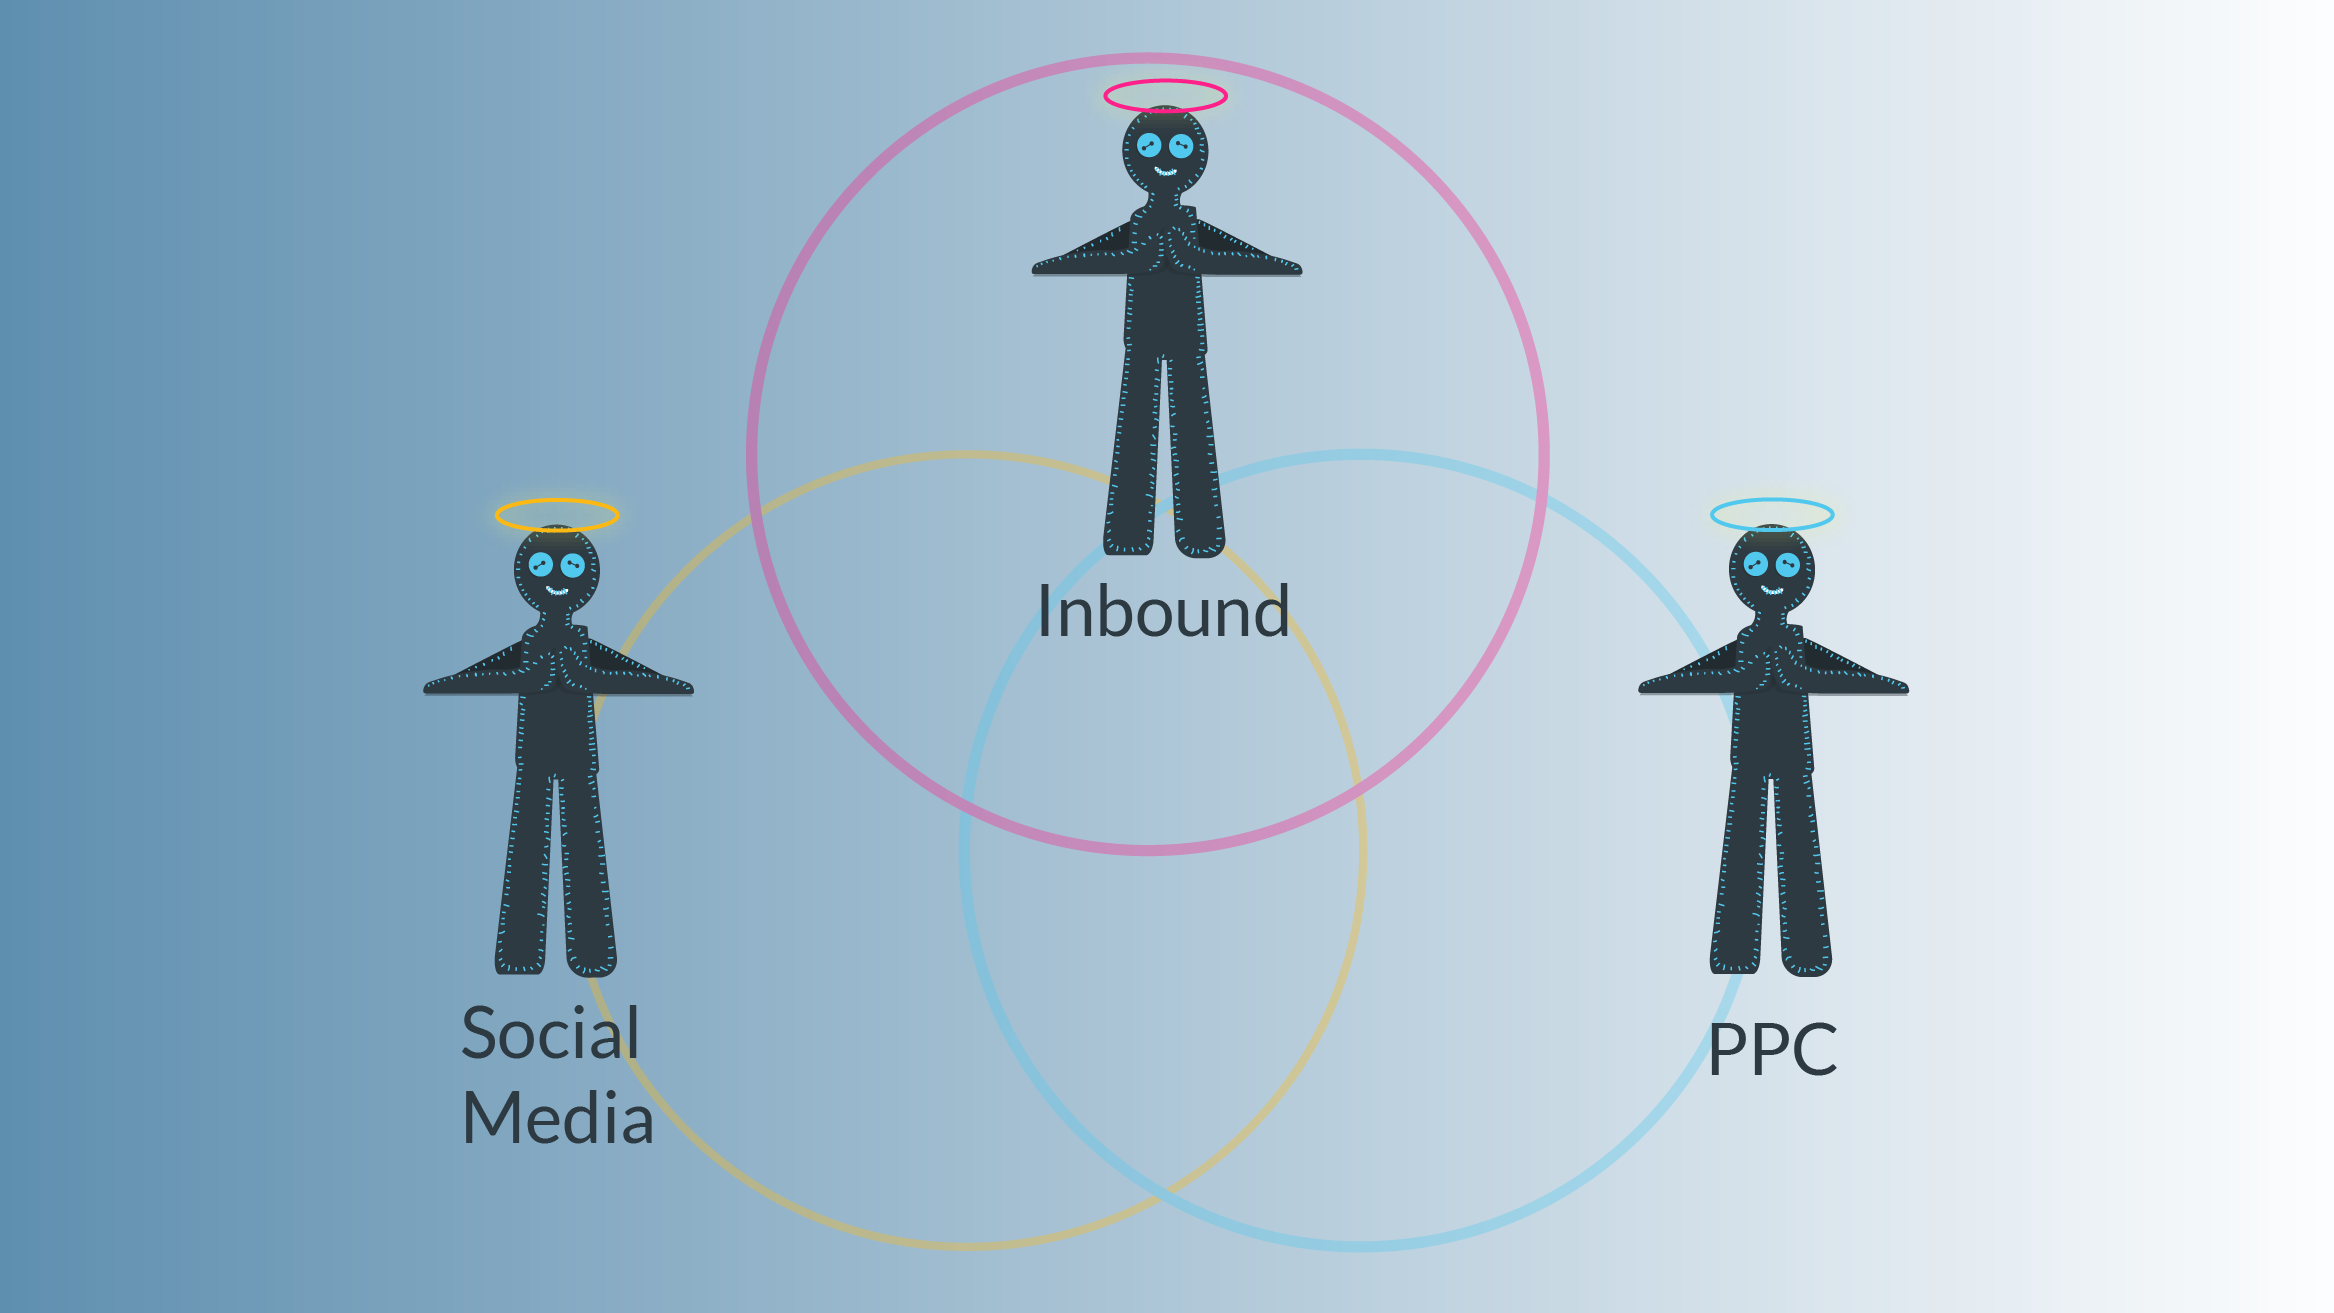 The Holy Trinity: Inbound, PPC and Social Media Marketing